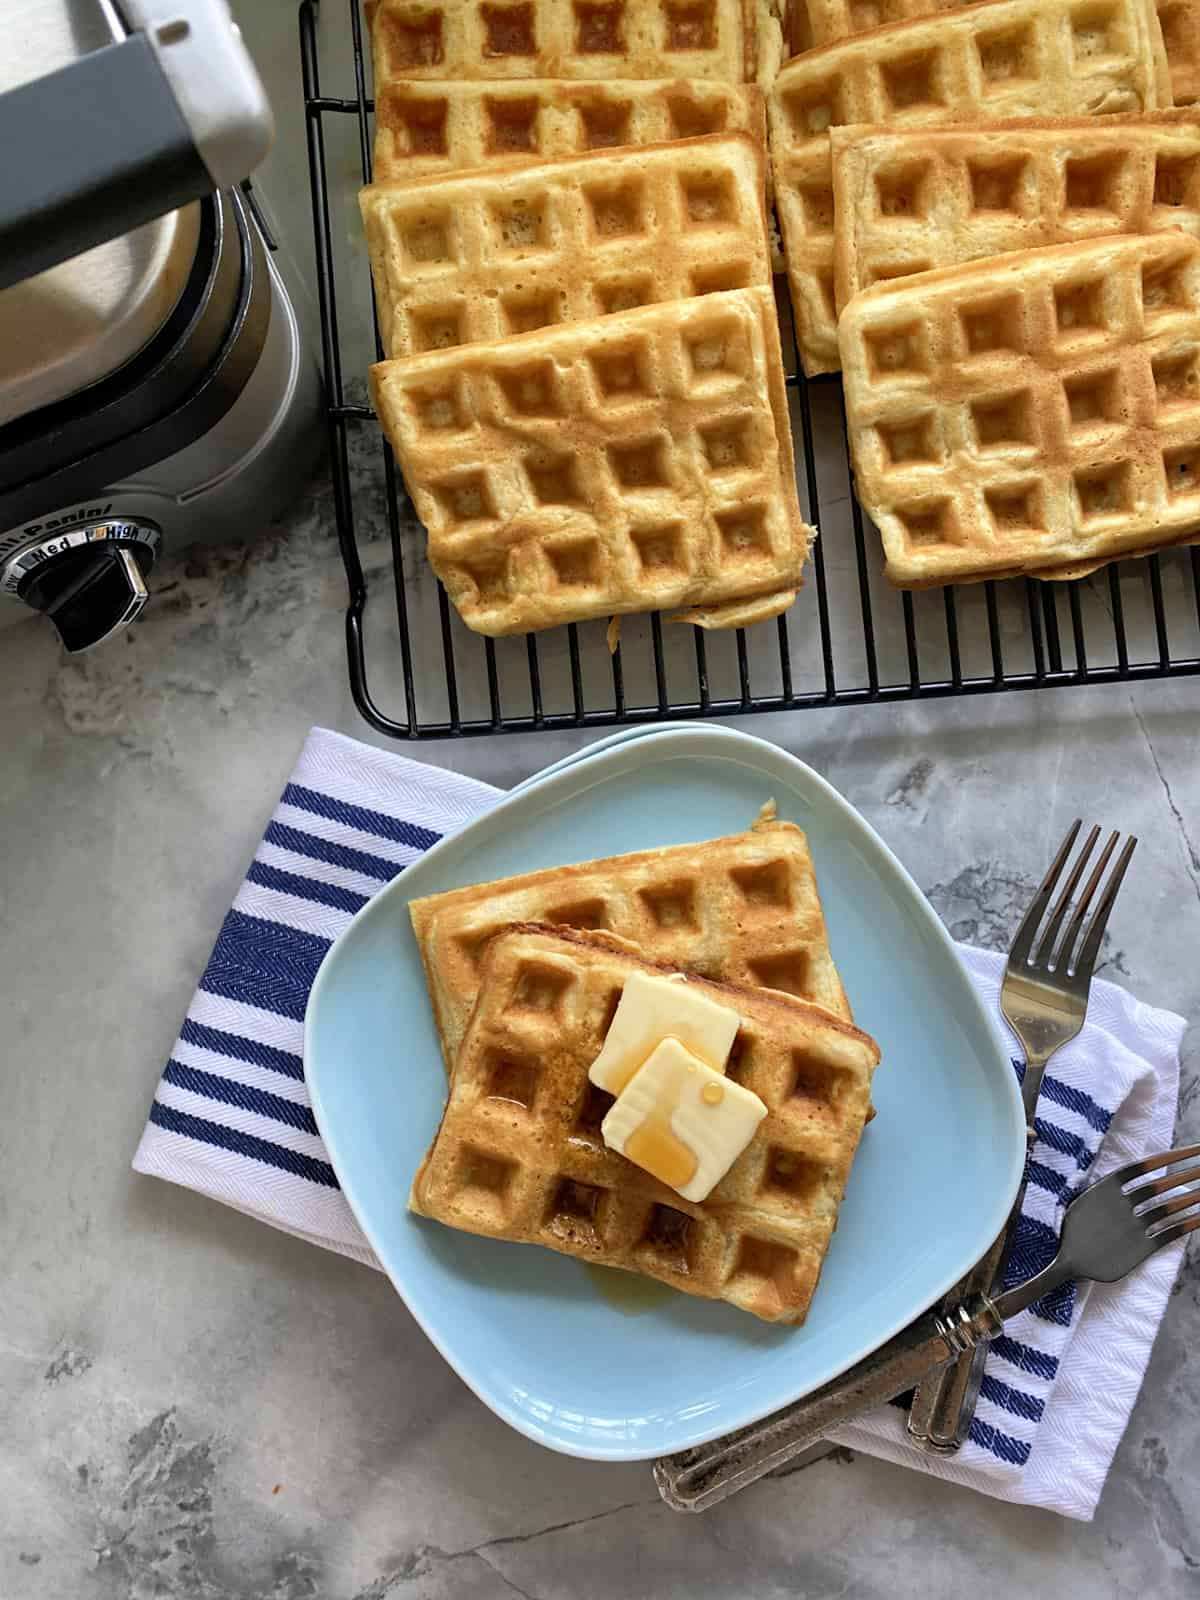 Top view of a blue plate filled with two waffles iwth butter and syrup with waffles and iron around it.